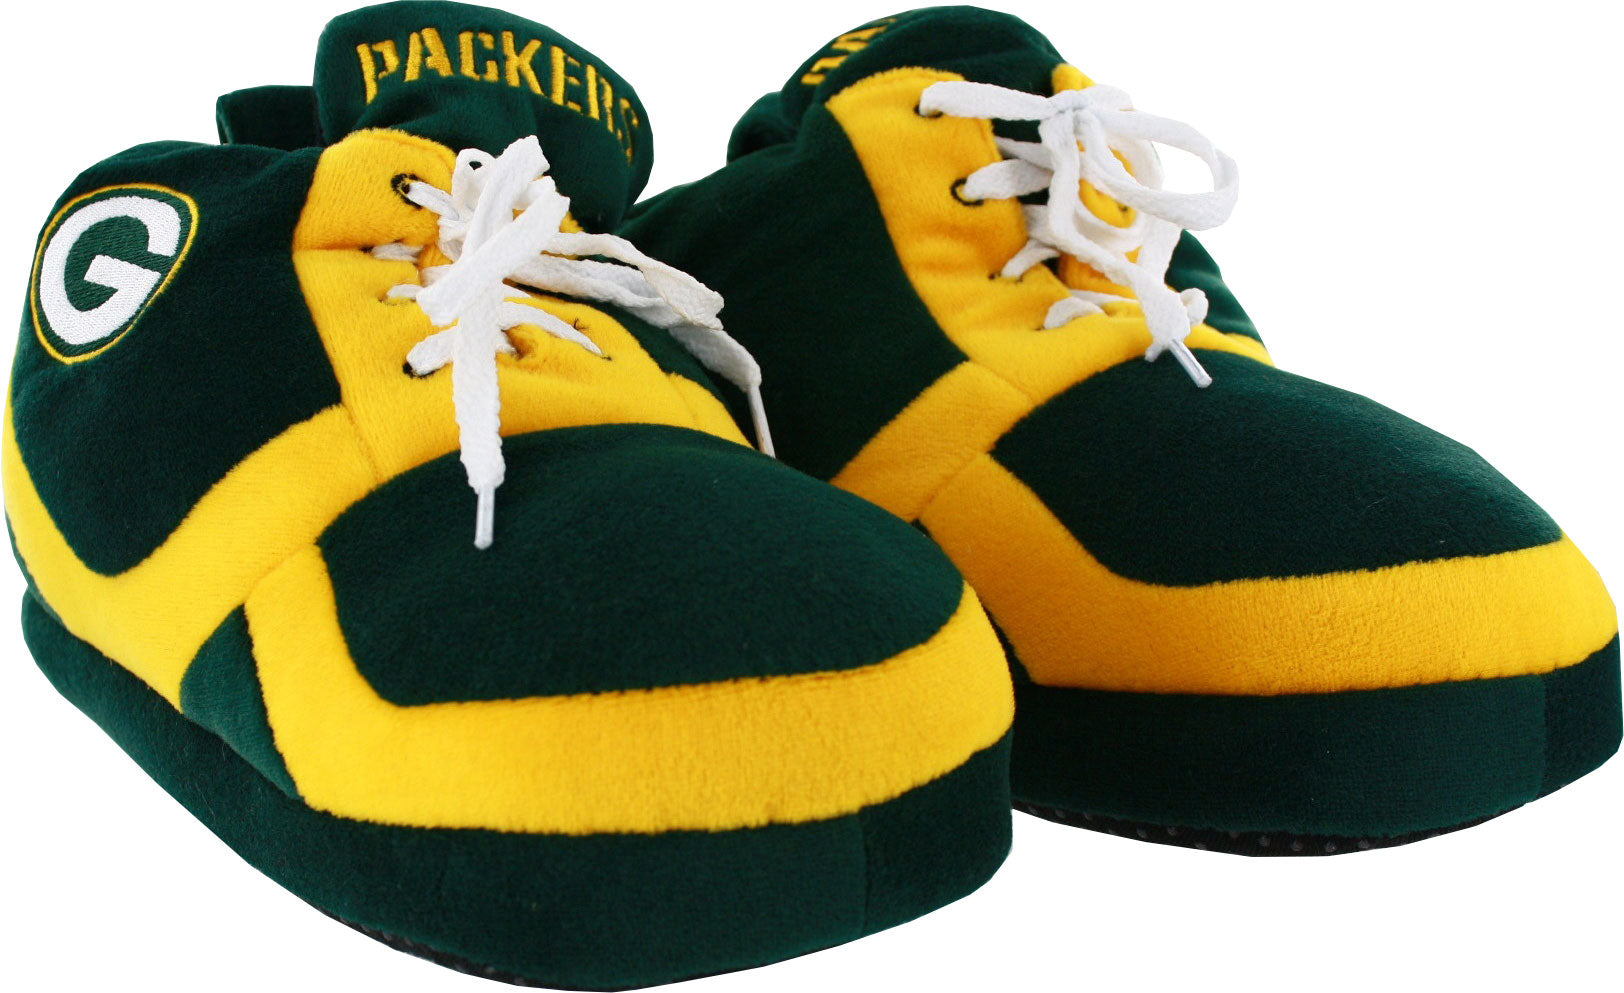 f96ebb9d990f Green Bay Packers 2015 Men s Sneaker Slippers – Green Bay Stuff